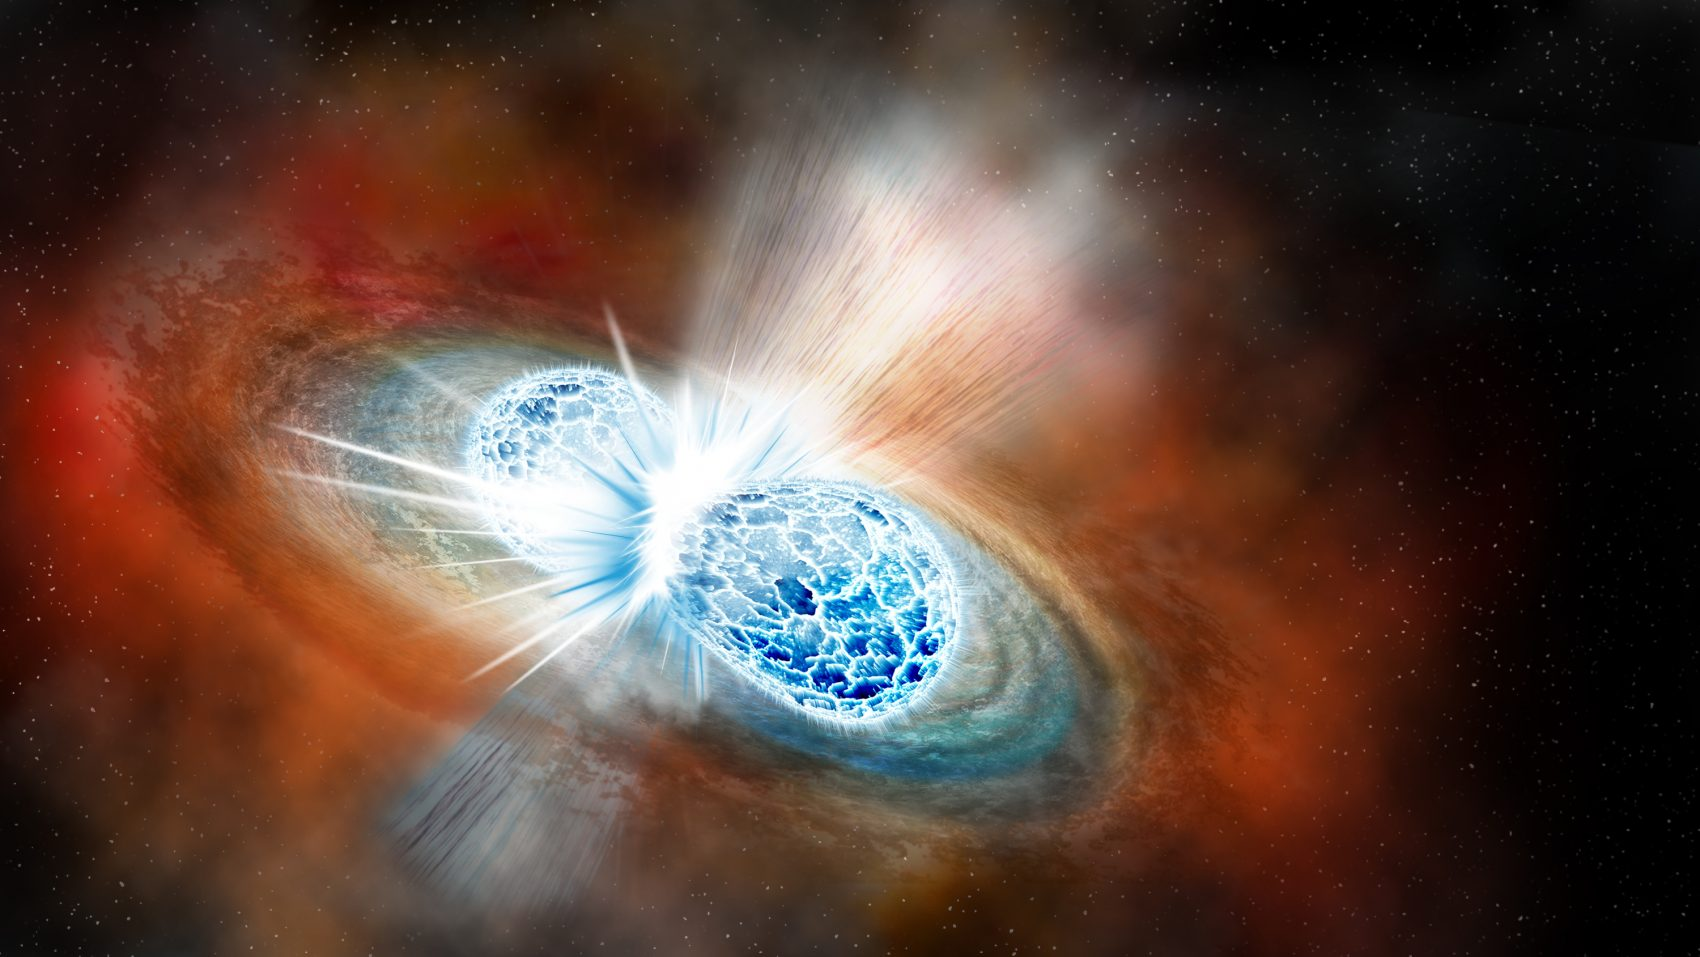 Astronomers Detect Collision Of Neutron Stars, Universe's 'Greatest Fireworks Show'